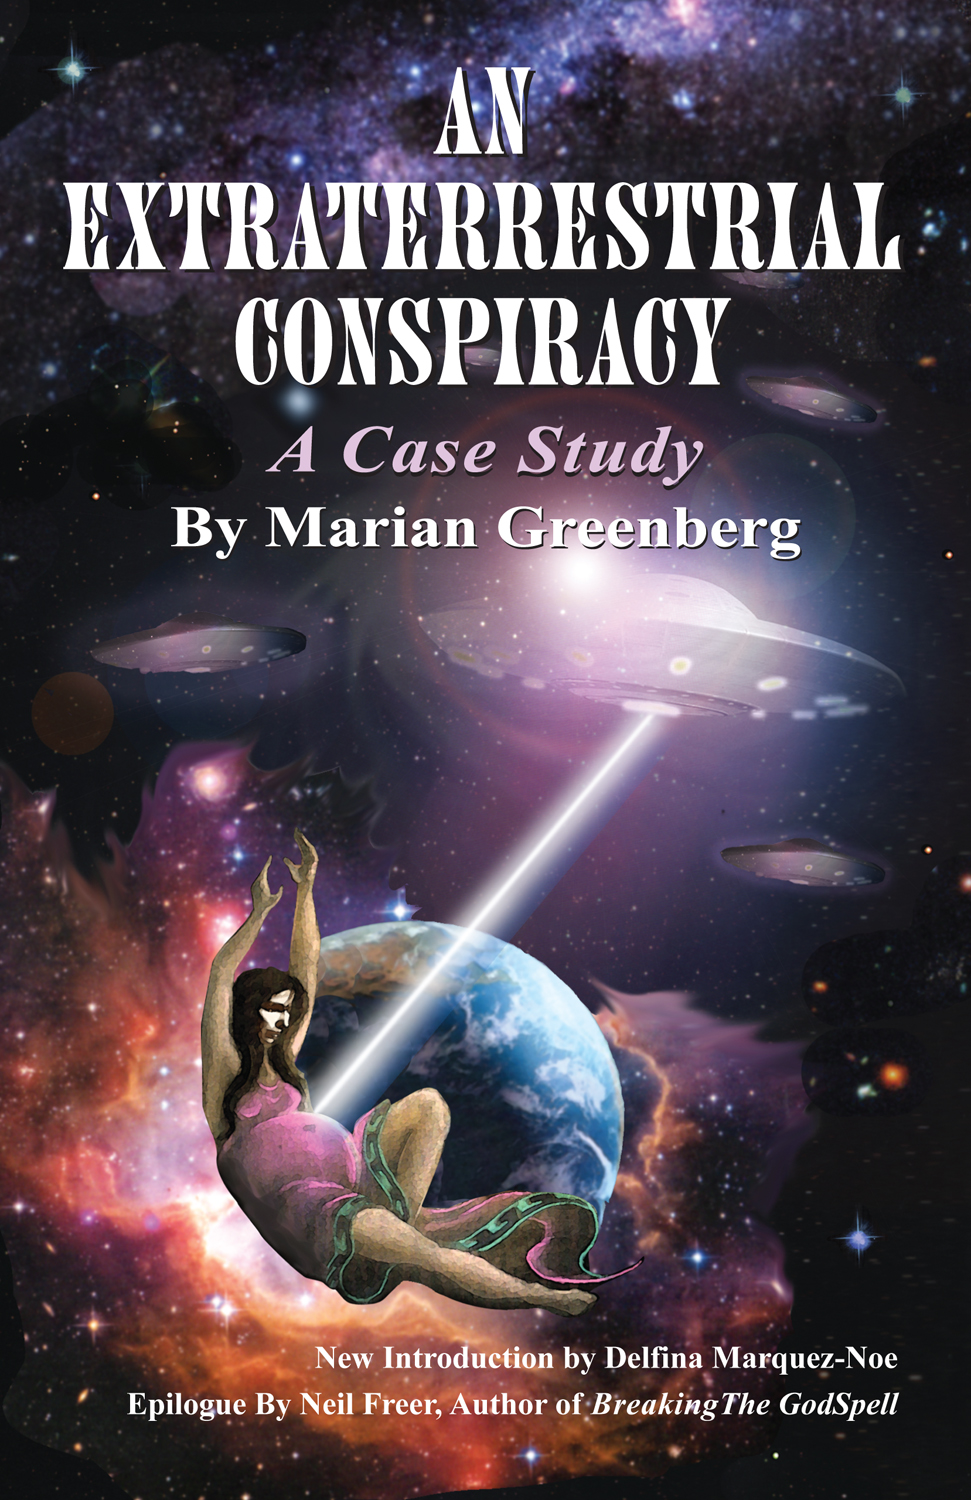 An Extraterrestrial Conspiracy: A Case Study